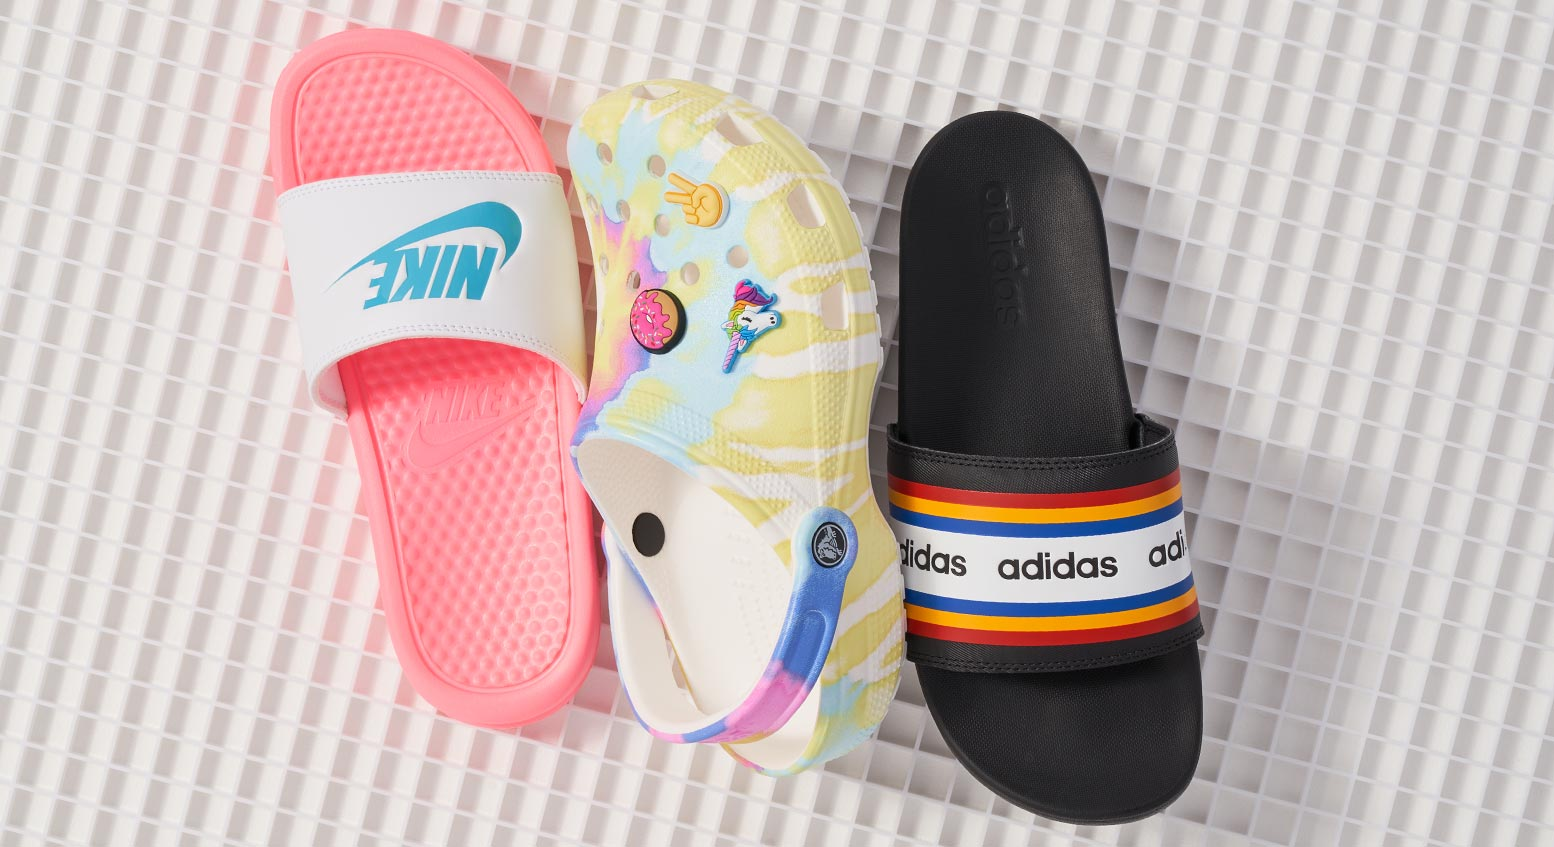 nike and adidas slides, with colorful crocs